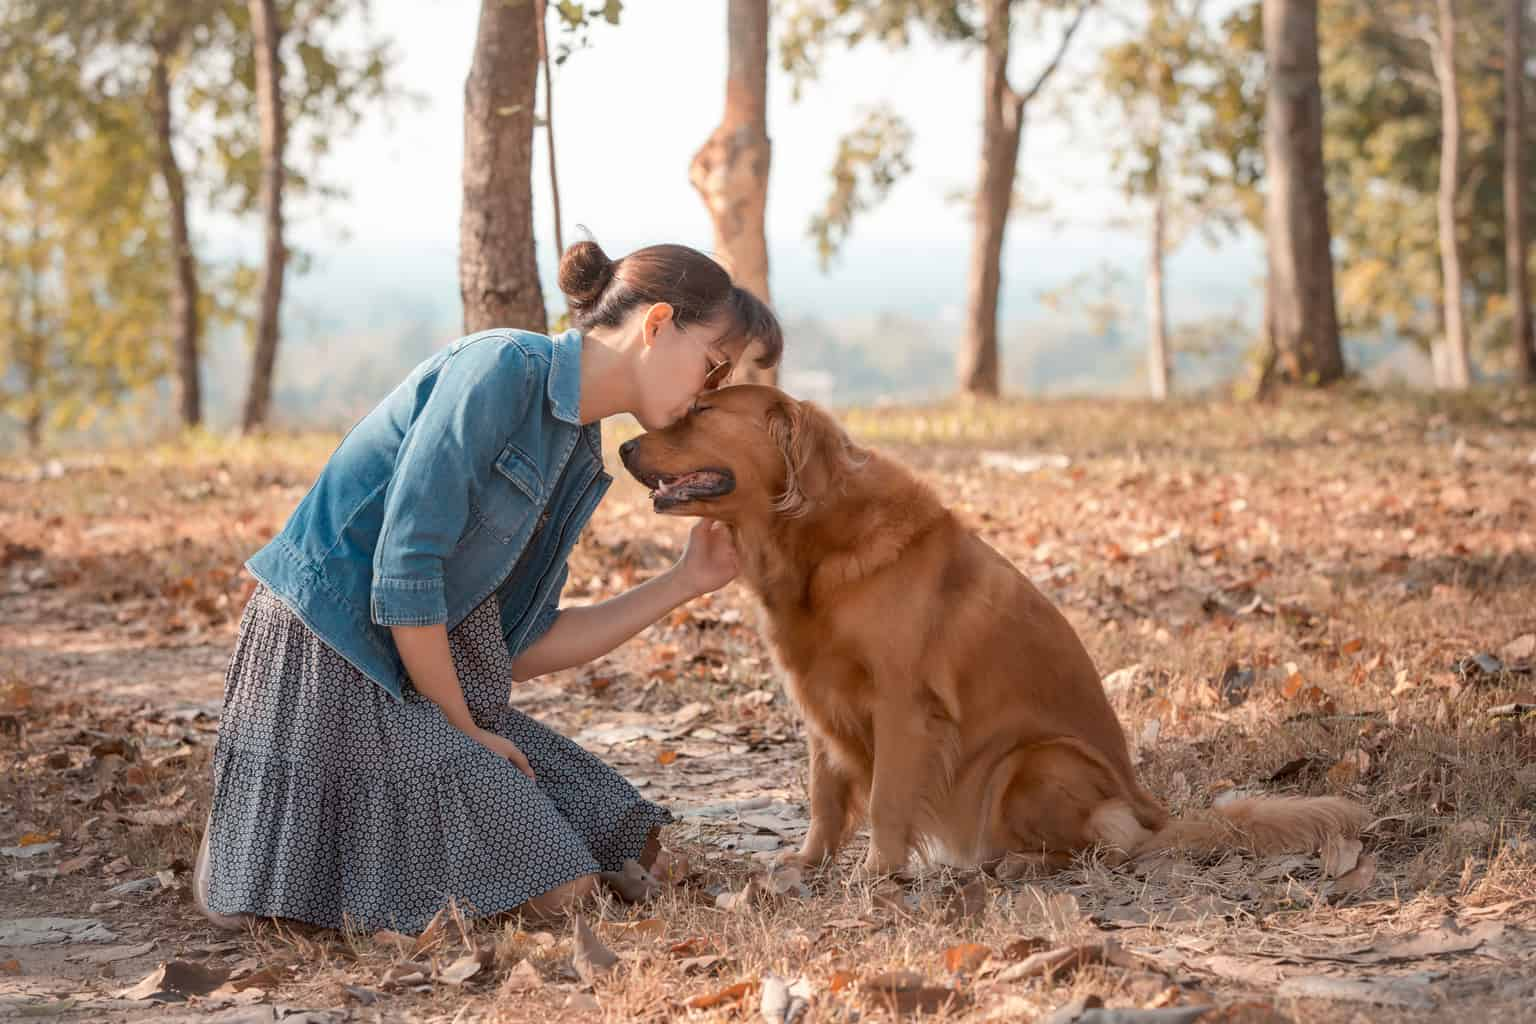 woman with golden retriever enjoying a quiet moment together in the woods